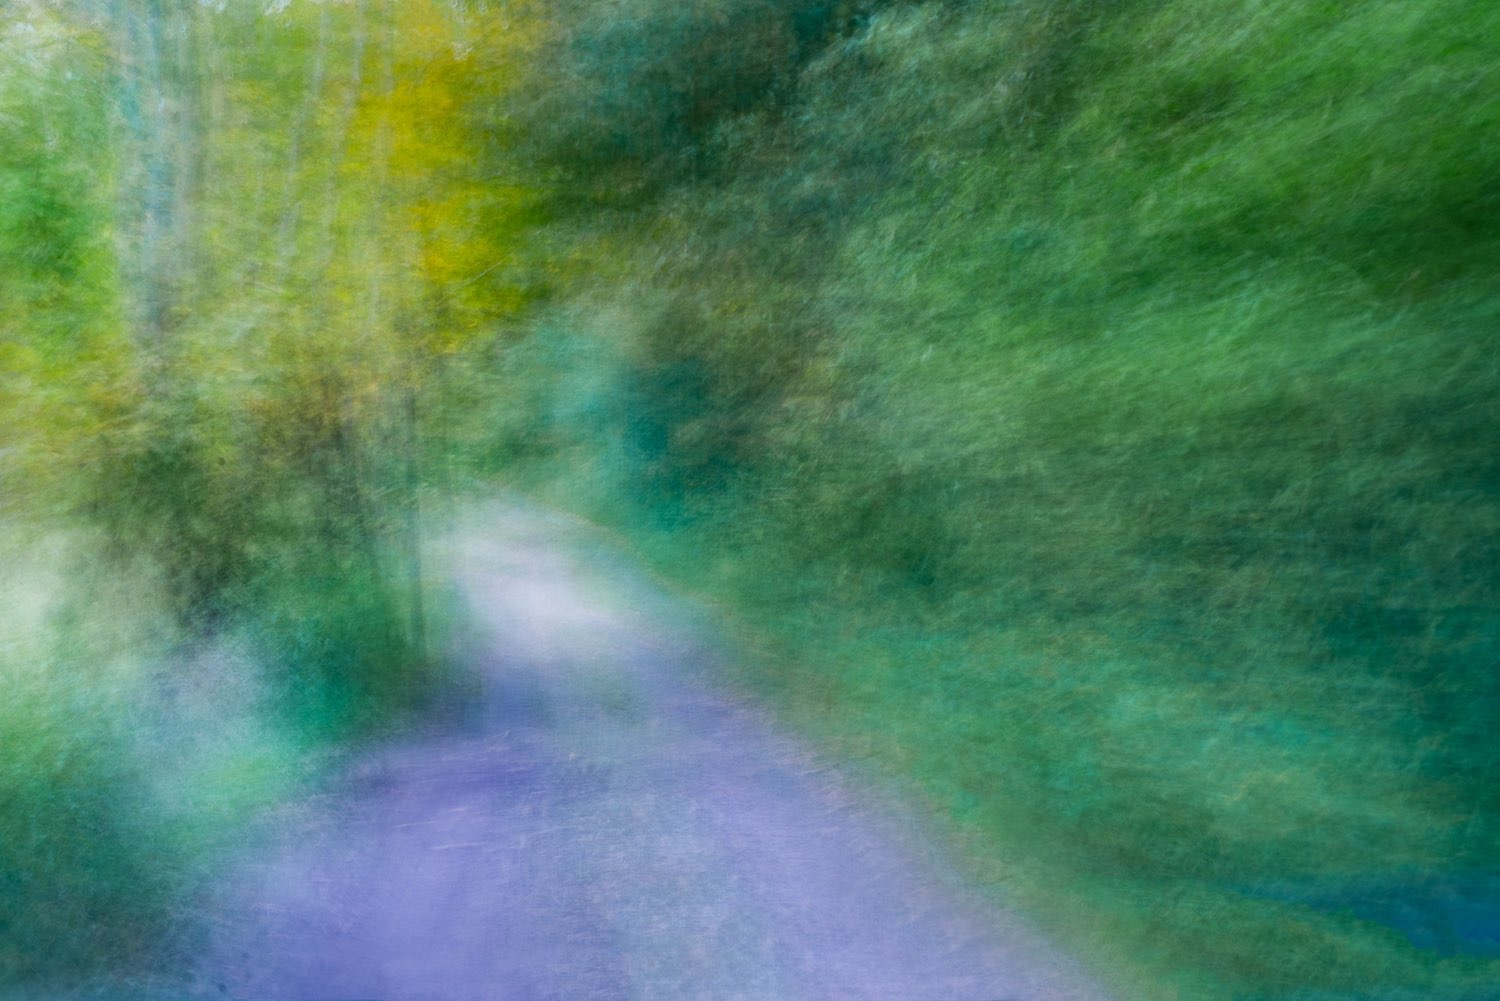 NY.  johnstuartstudio, Using movement in a still photograph creates painterly results. The abstract was created on a country road in Pine Plains NY.  johnstuartstudio-compress.jpg